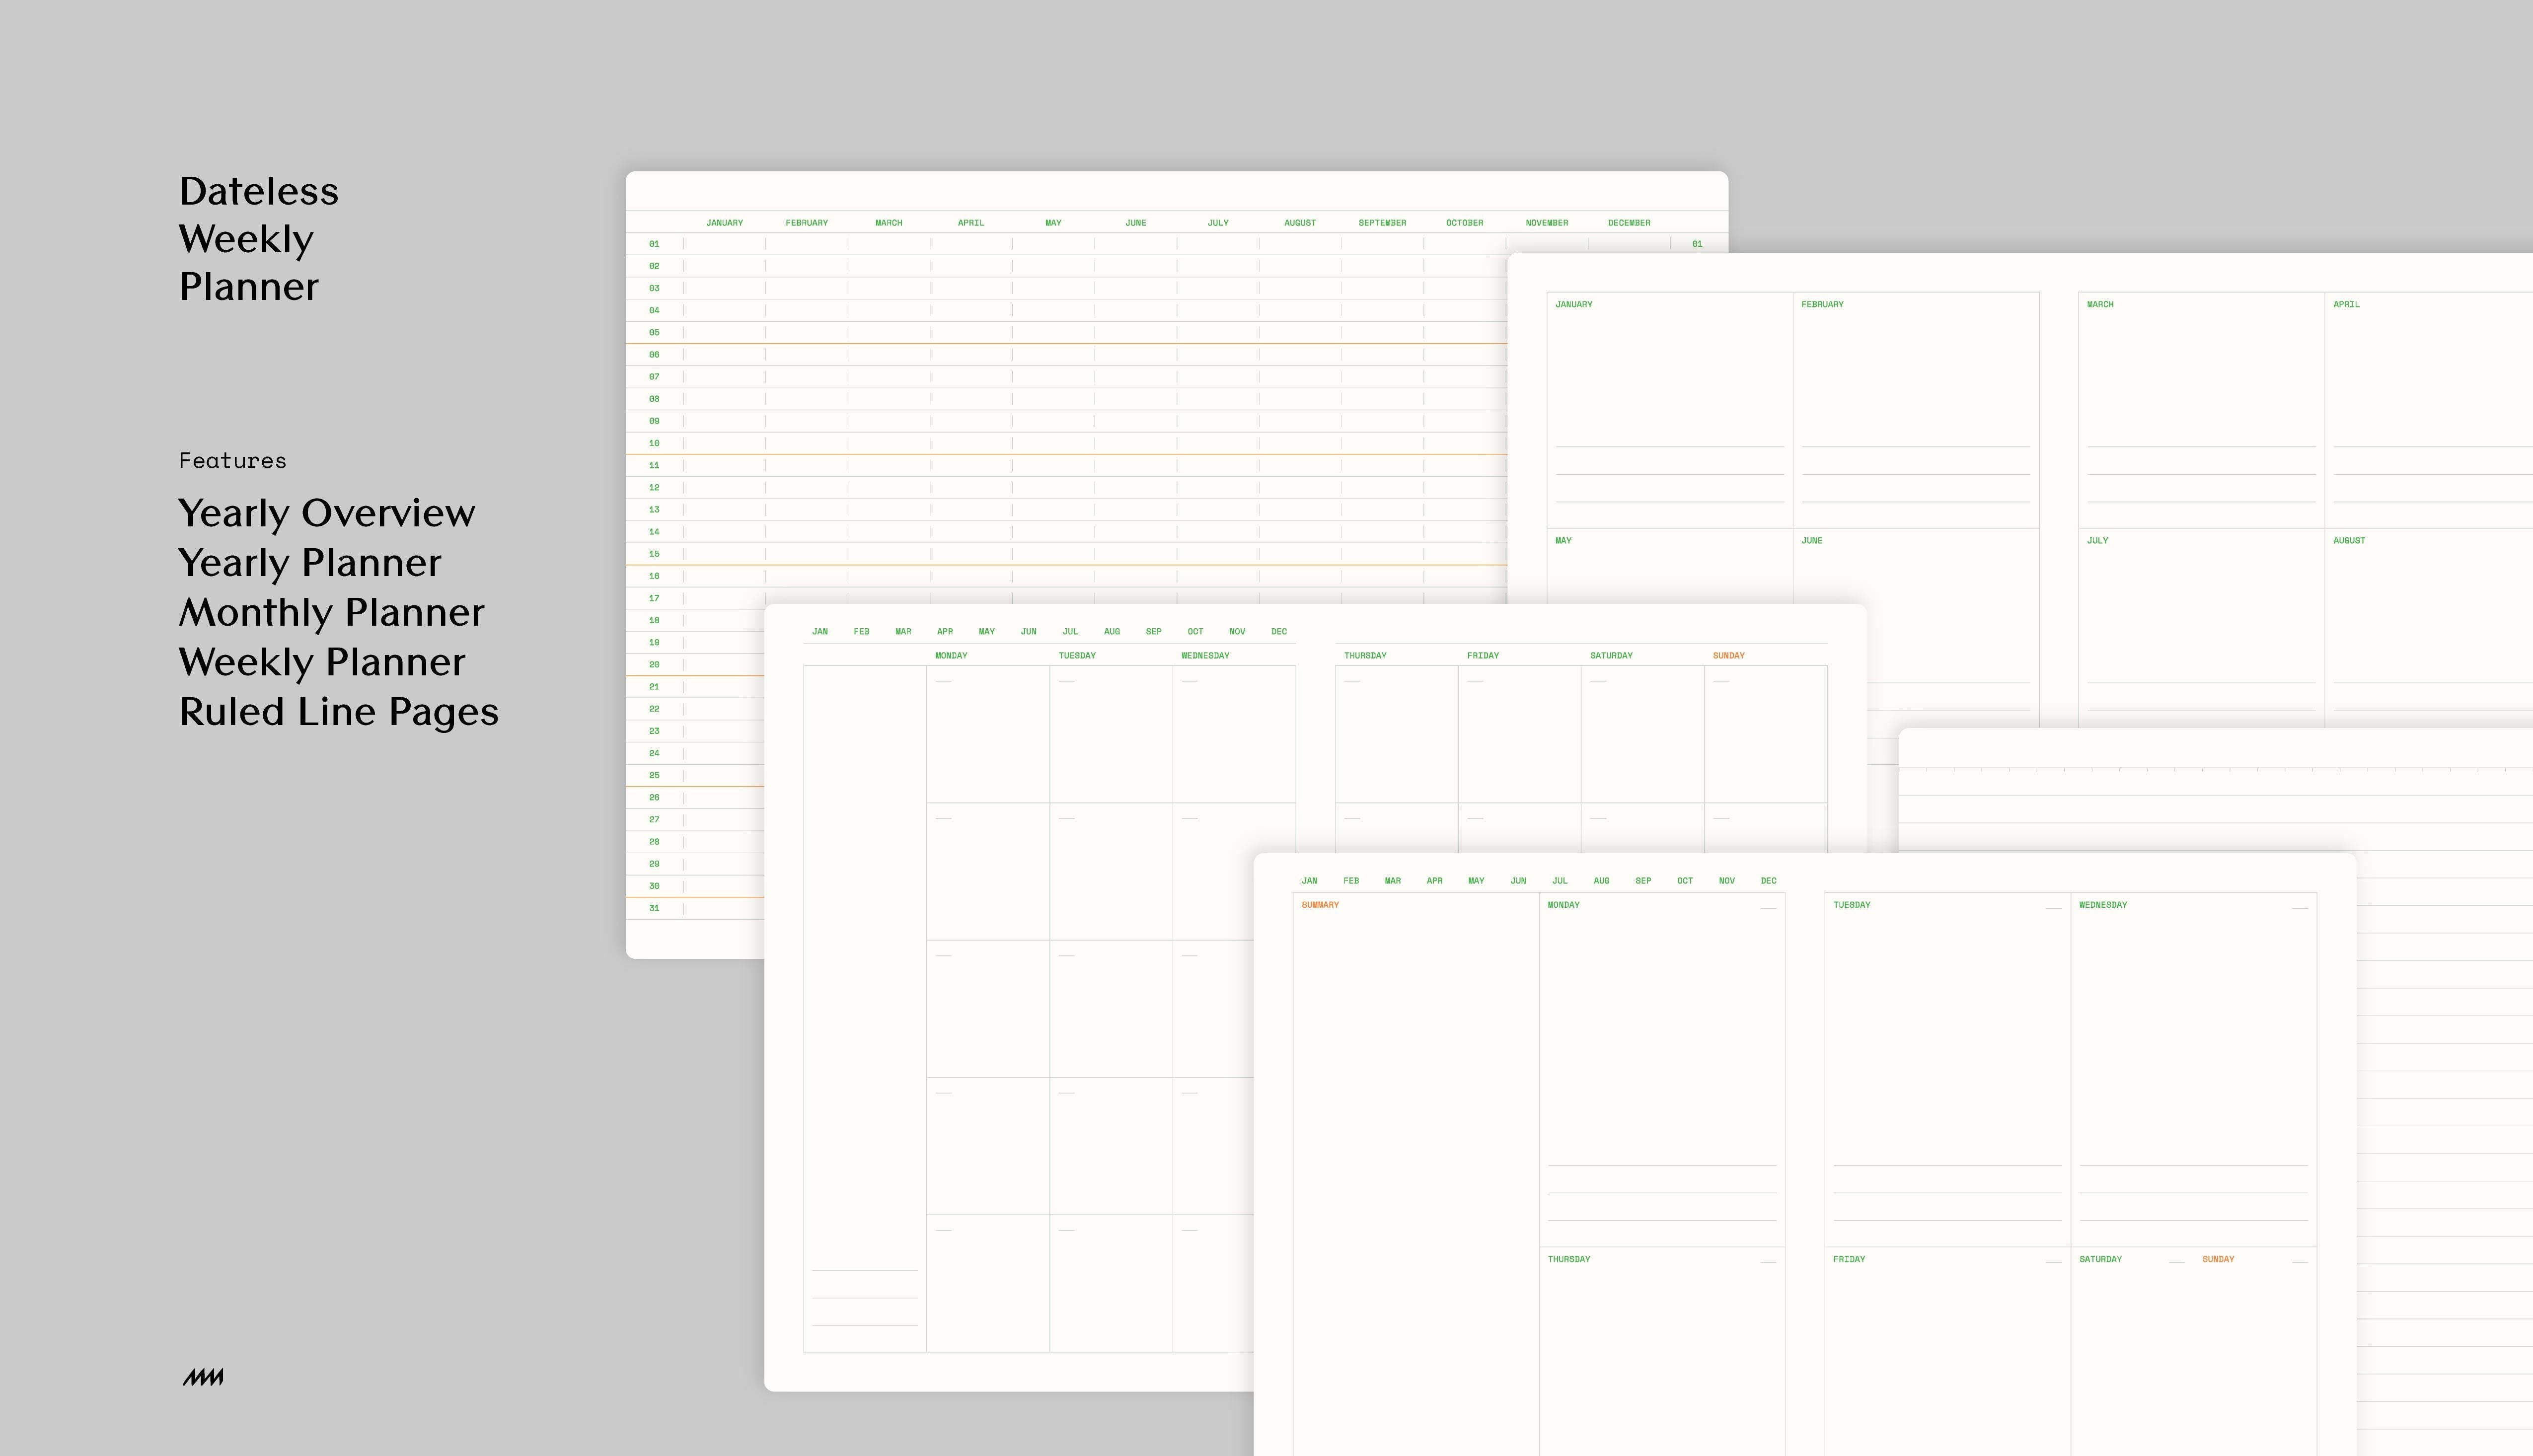 full<h3>Option 2: Dateless Weekly Planner</h3><p>Yearly Overview, Yearly Planner, Monthly Planner and Weekly Planner</p>